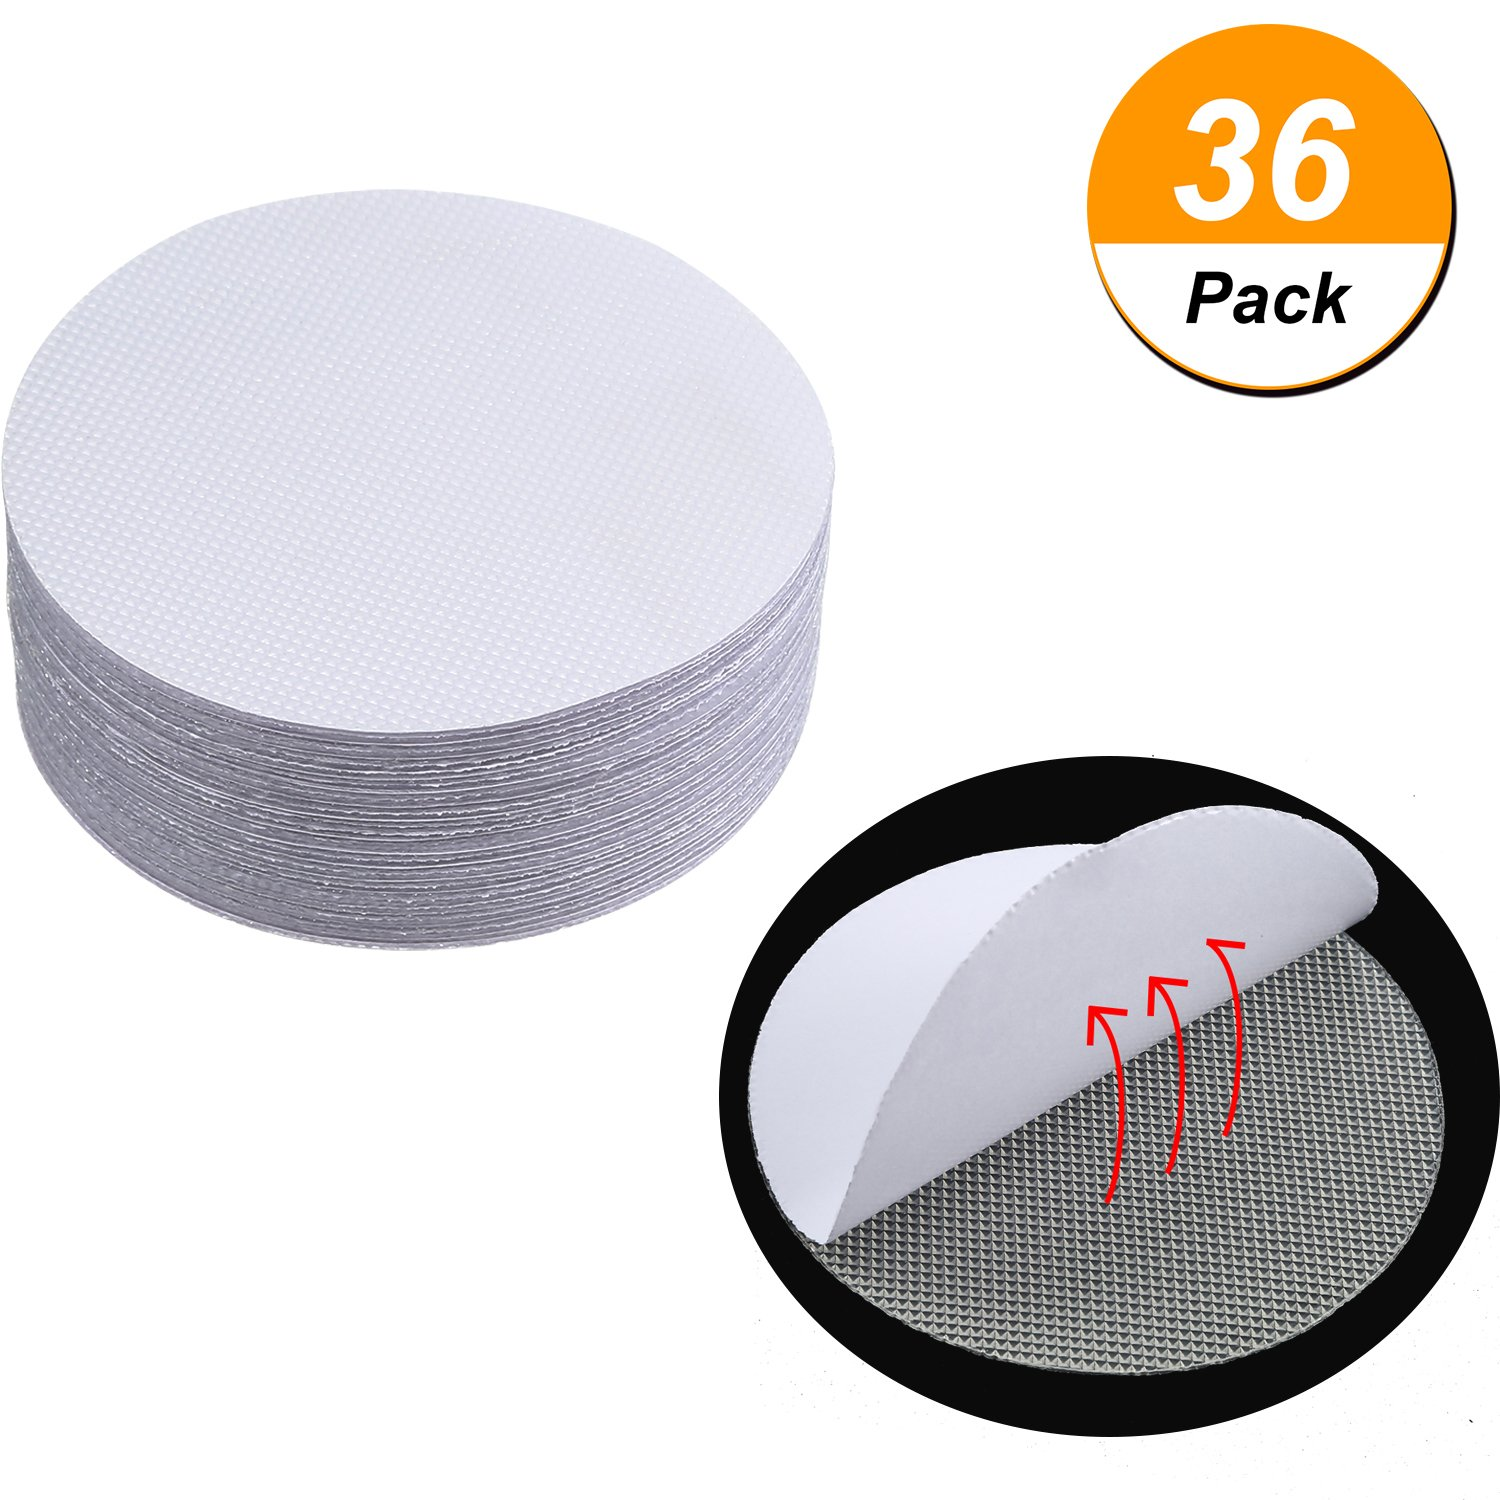 Jovitec 36 Pack Round Non-Slip Safety Shower Treads Self Adhesive Bath Stickers Round Anti-slip Discs Tape, 10 cm/4 Inch, Clear